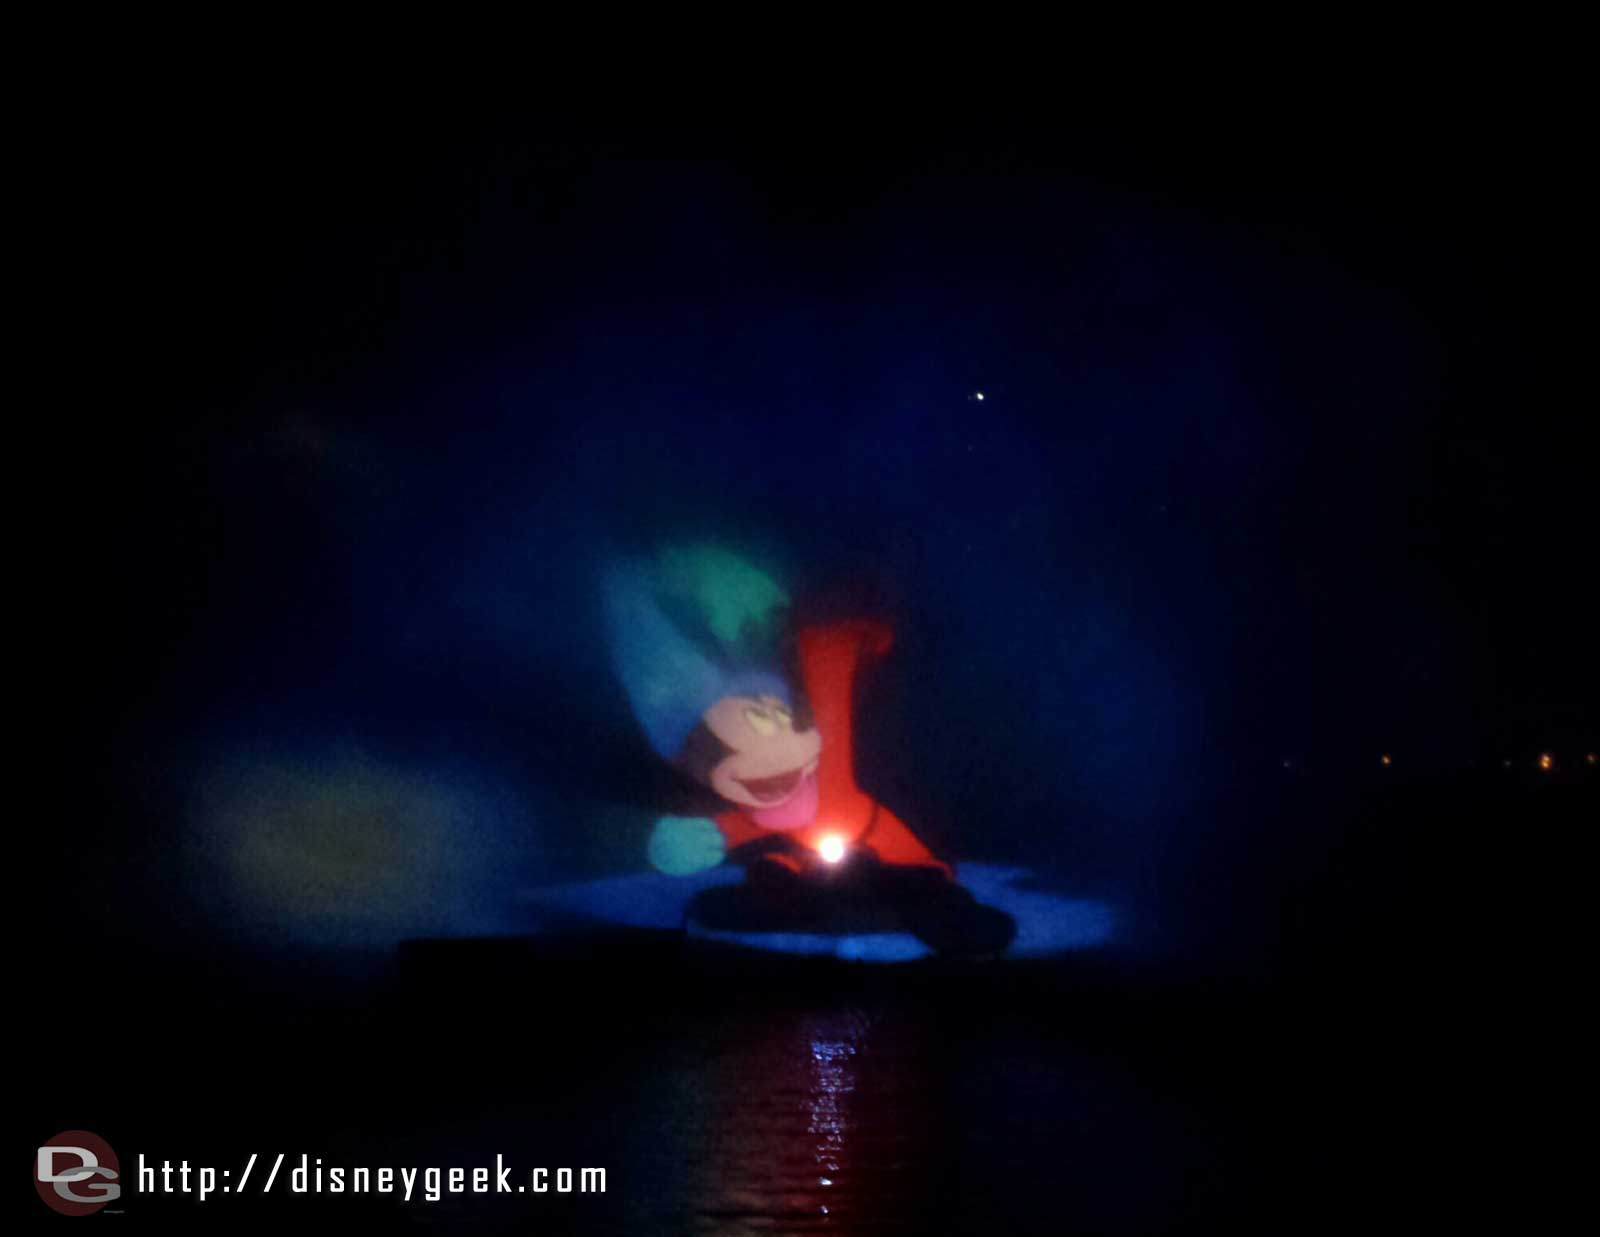 #Fantasmic time #Disneyland